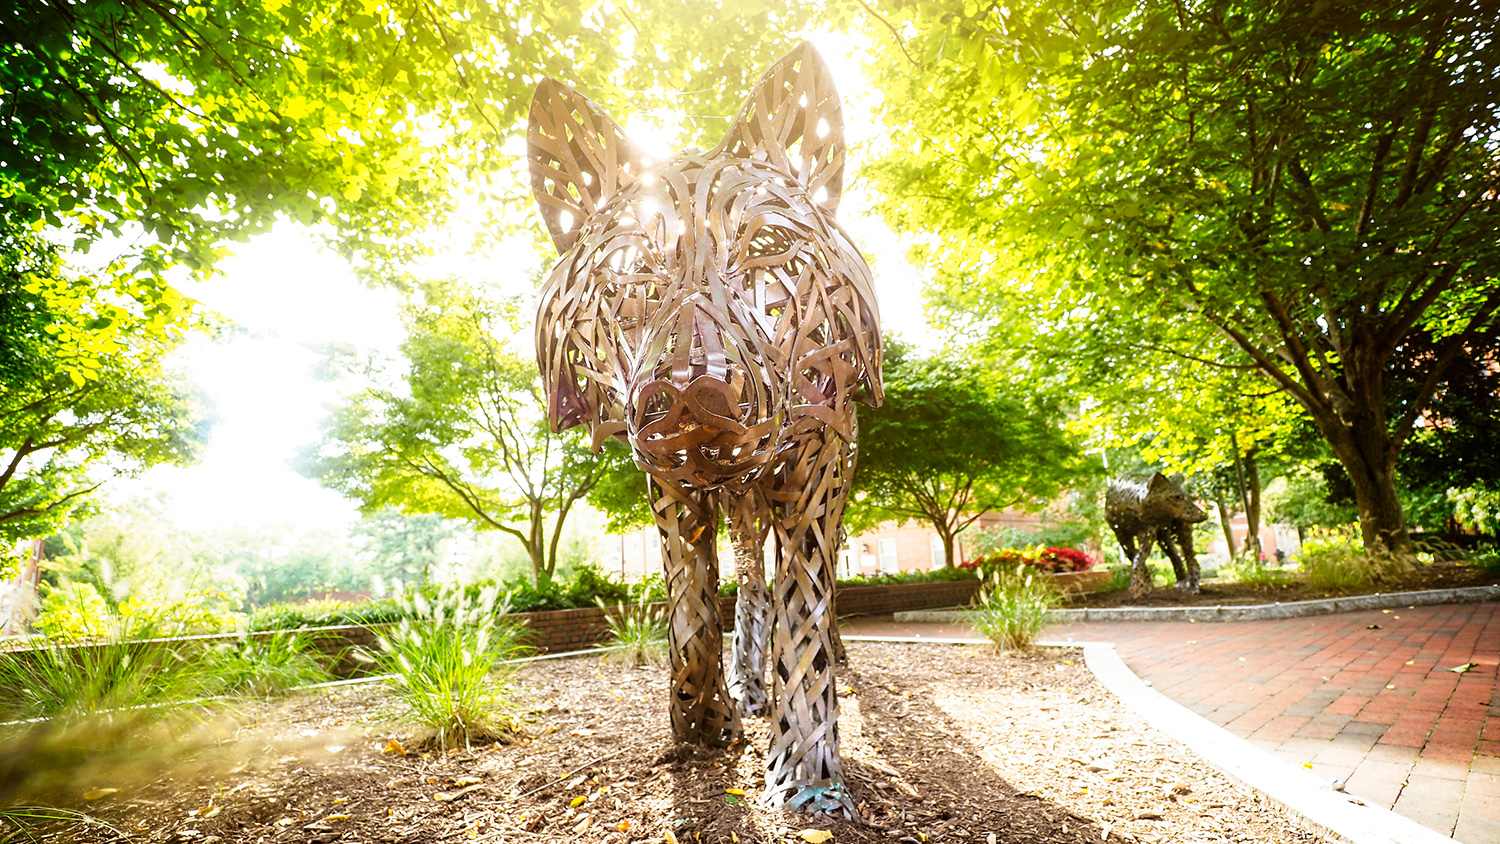 Sunlight shining from behind wolf sculpture